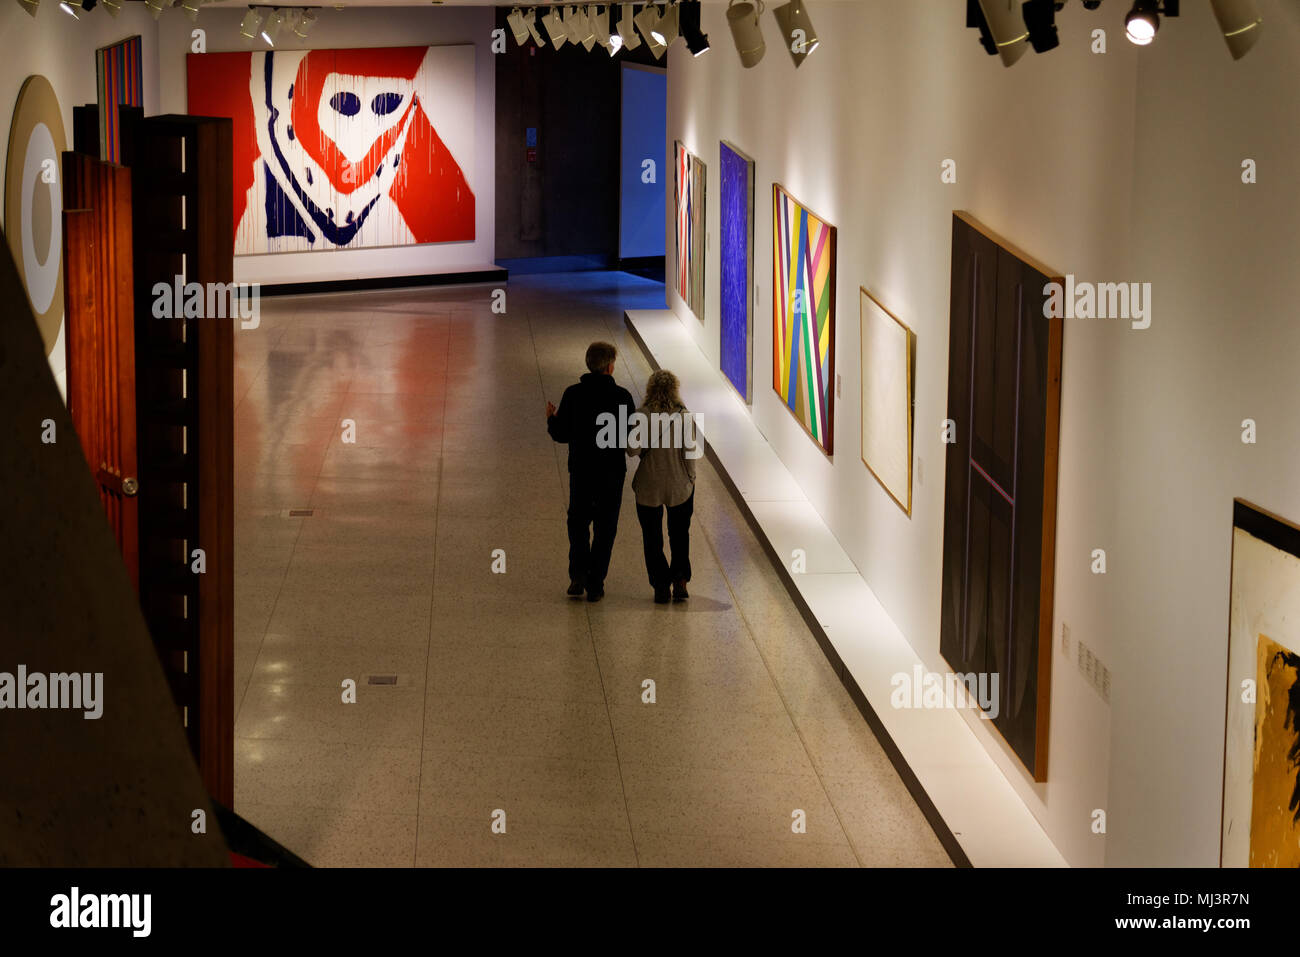 Two people inside the Pavillon Claire et Marc Bourgie in the Montreal Fine Arts Museum - Stock Image